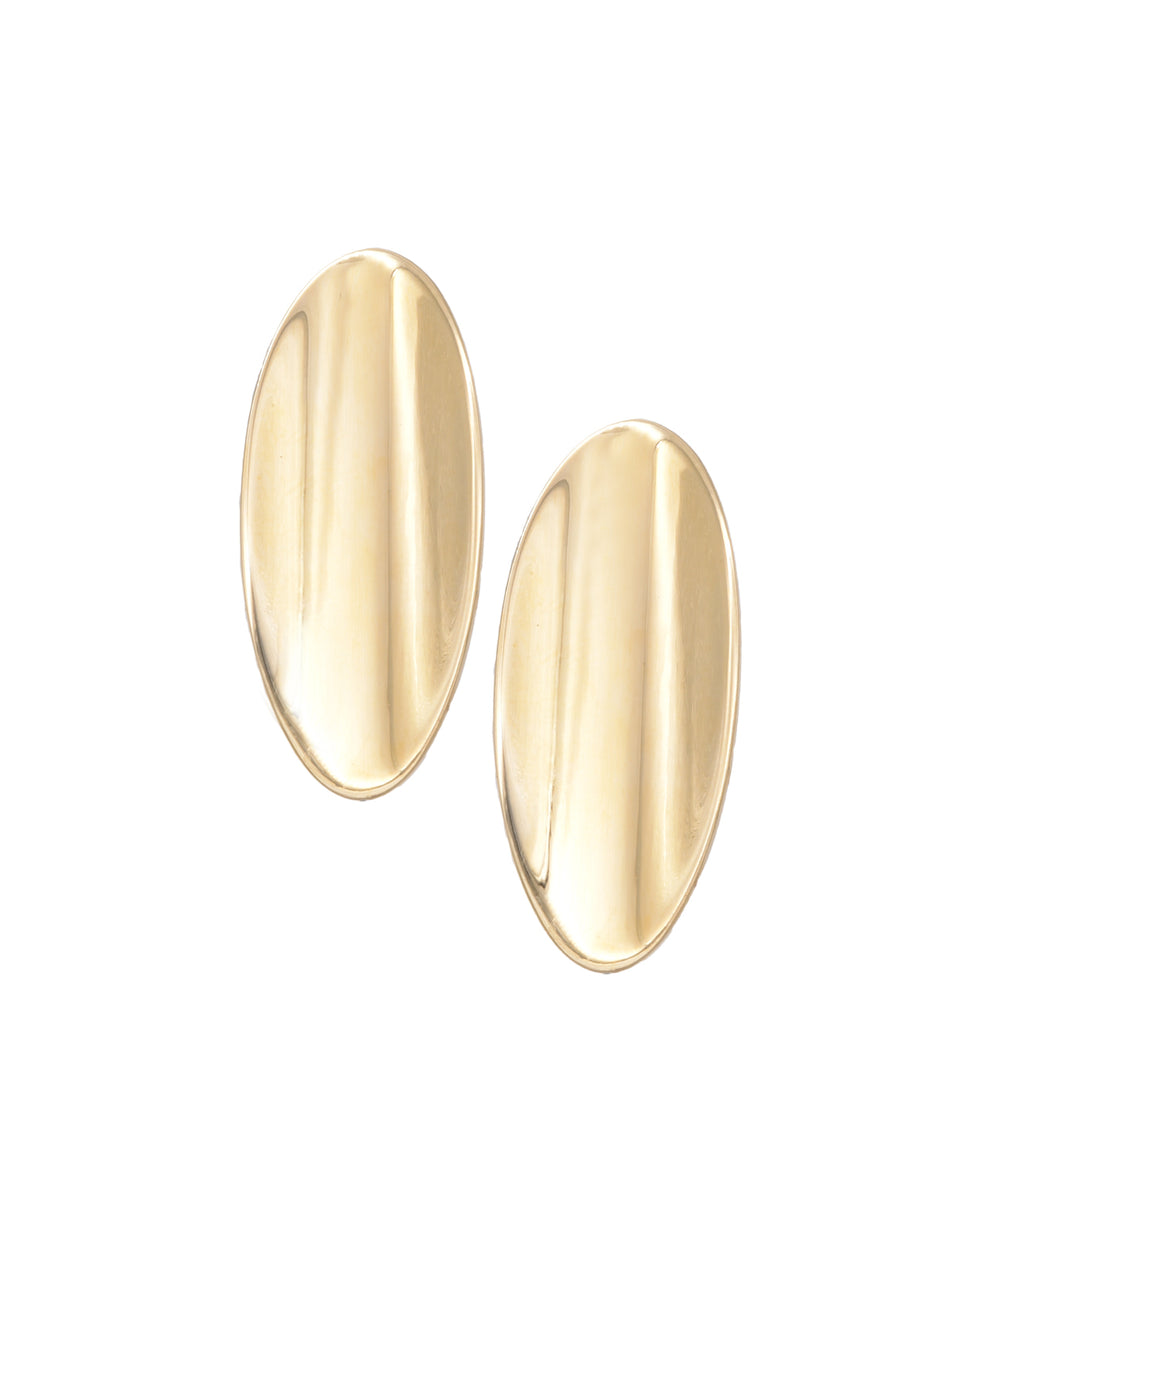 High-polish oval earrings